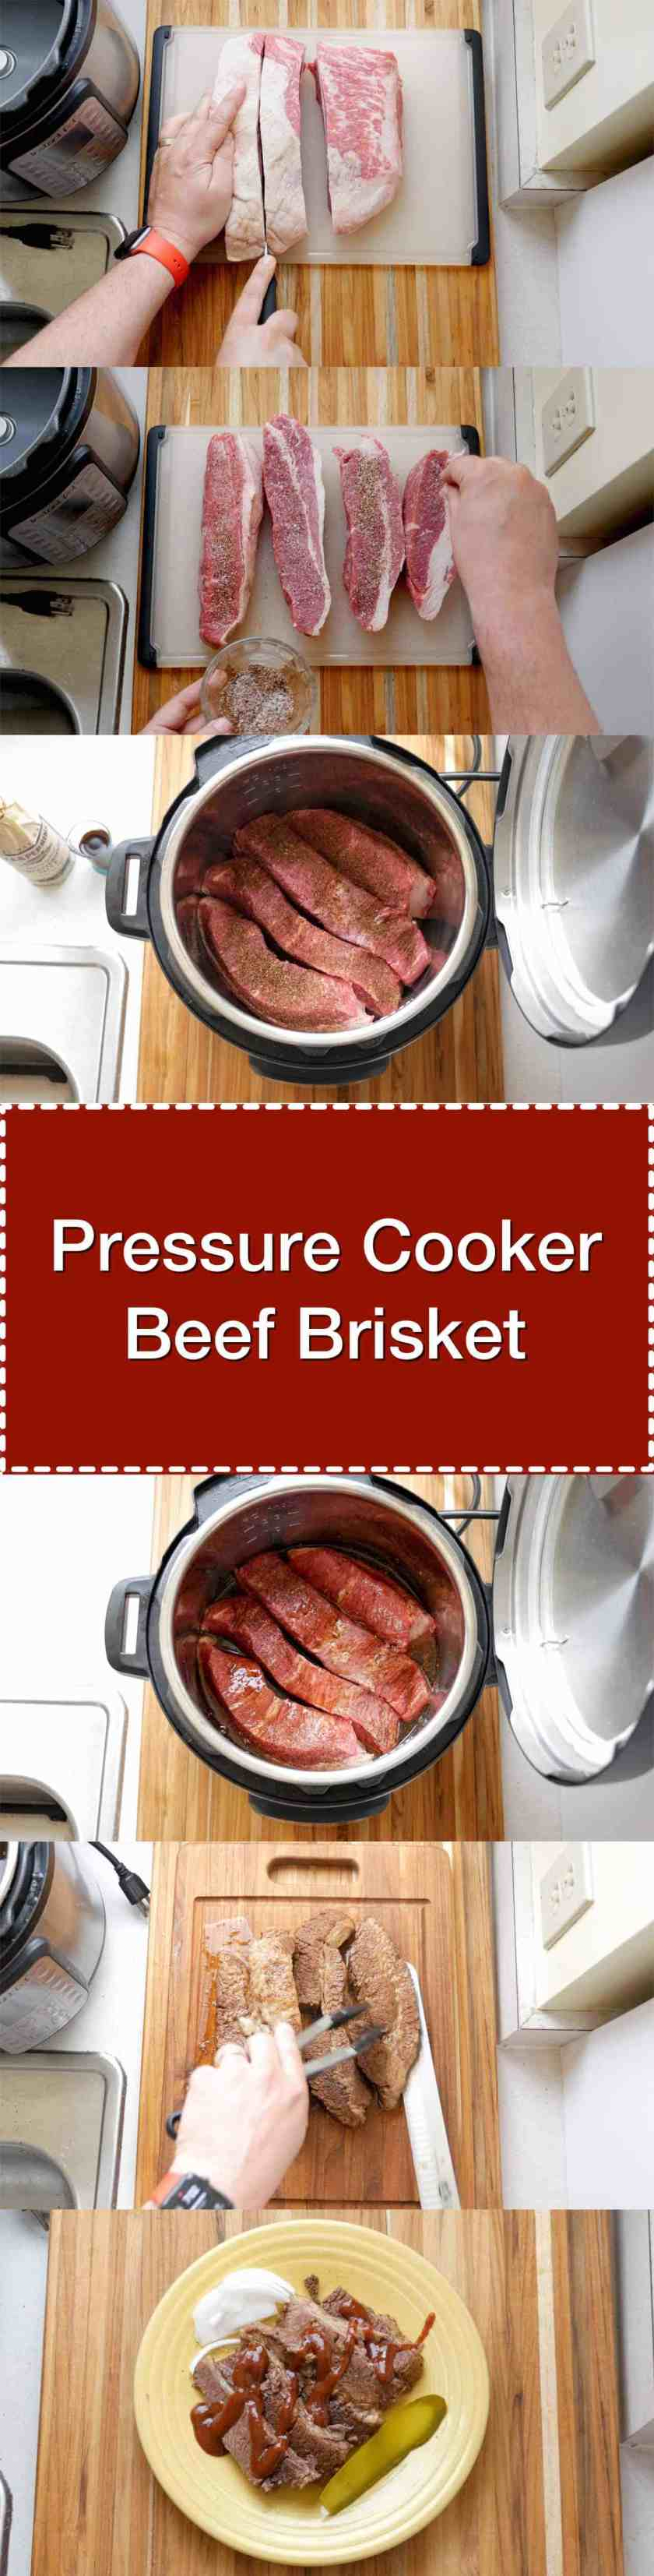 Pressure Cooker Beef Brisket. Tender beef brisket, ready in about an hour and a half thanks to the pressure cooker. | DadCooksDinner.com